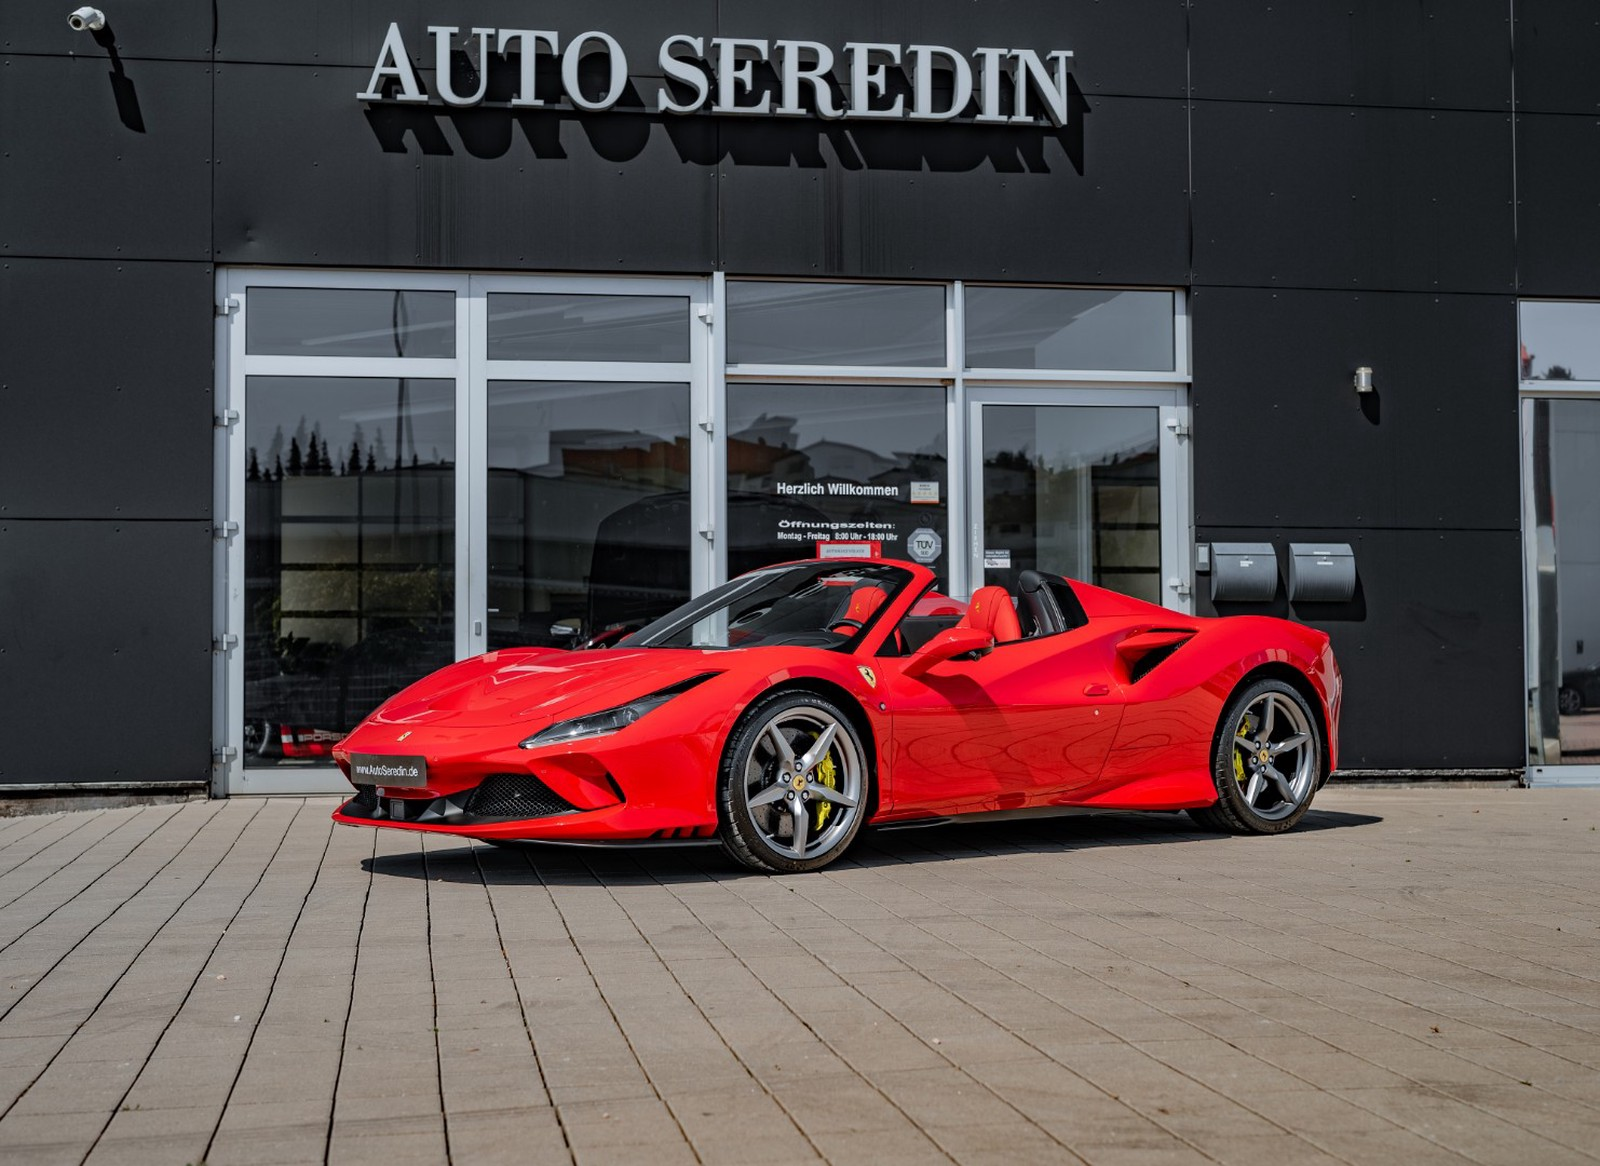 Ferrari F8 Spider New Buy In Hechingen Bei Stuttgart Price 371199 Eur Int Nr 20 308 Sold